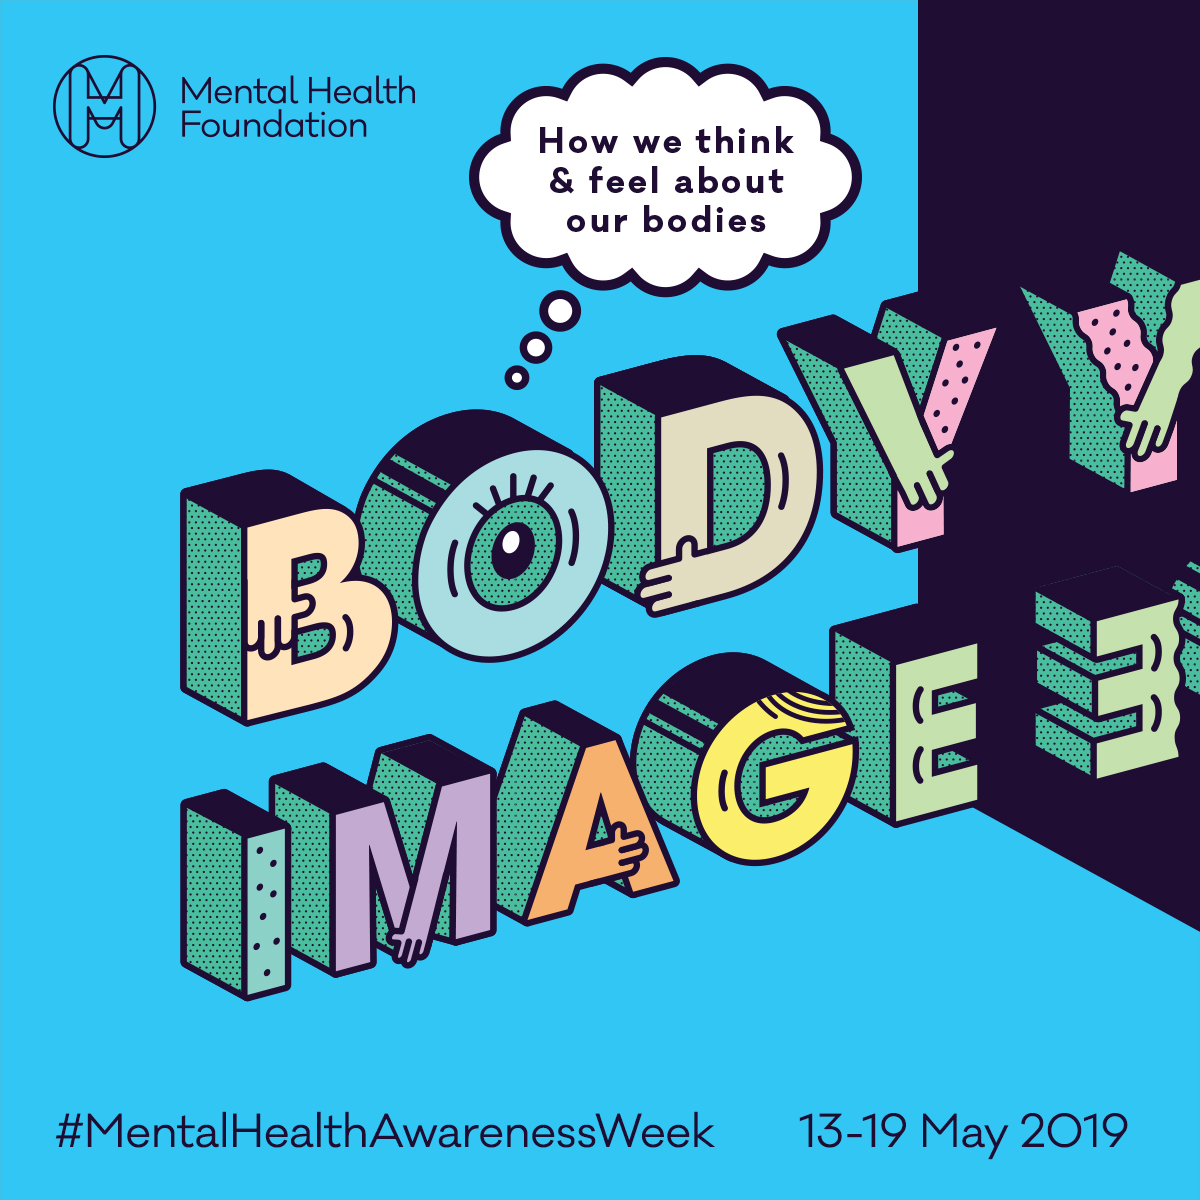 Calls for action to build and promote positive body image